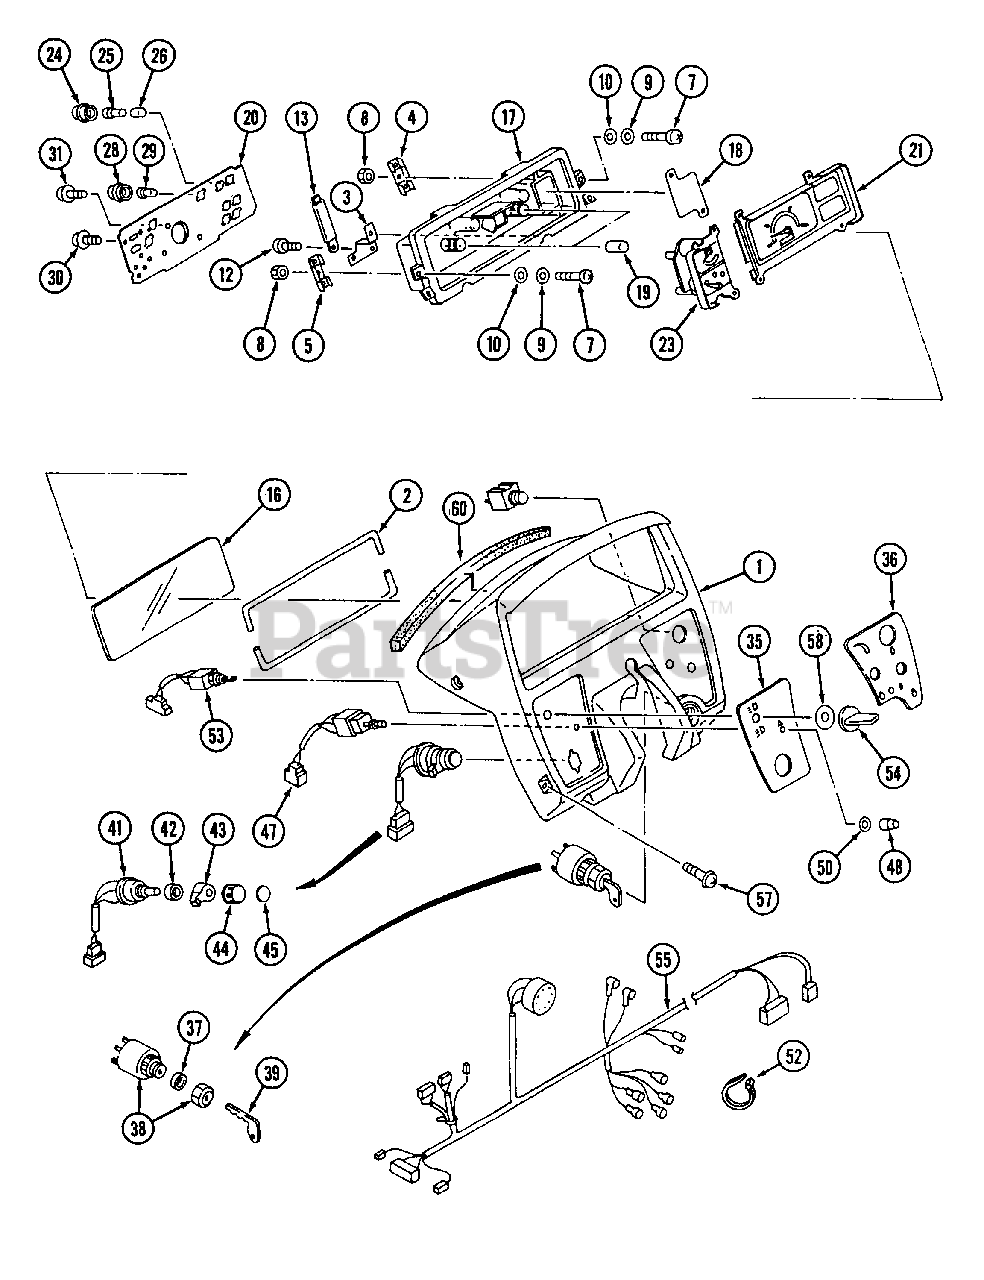 Cub Cadet Parts on the Electrical System (Panel Ass'y